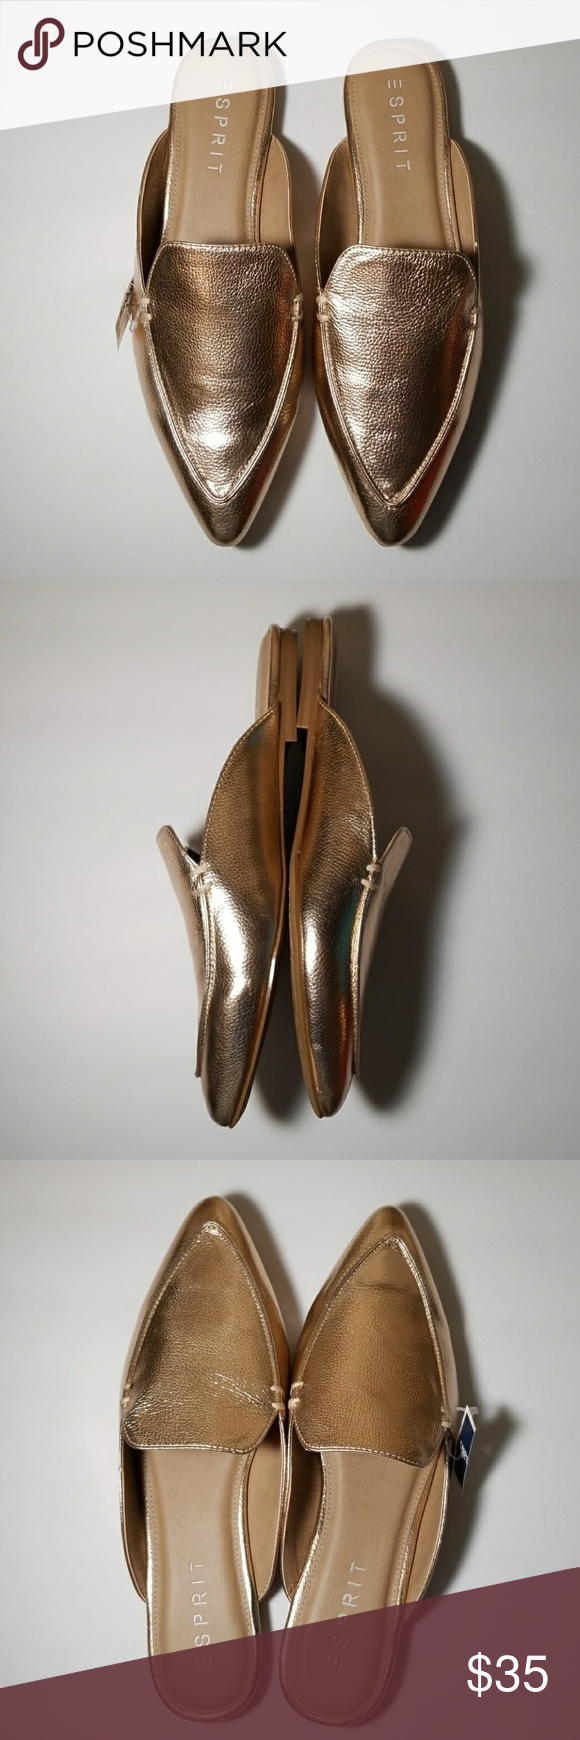 7490ac43bb05bc Esprit Mia Slip On Pointed Toe Mule Once you slide your feet into the Mia  Esprit